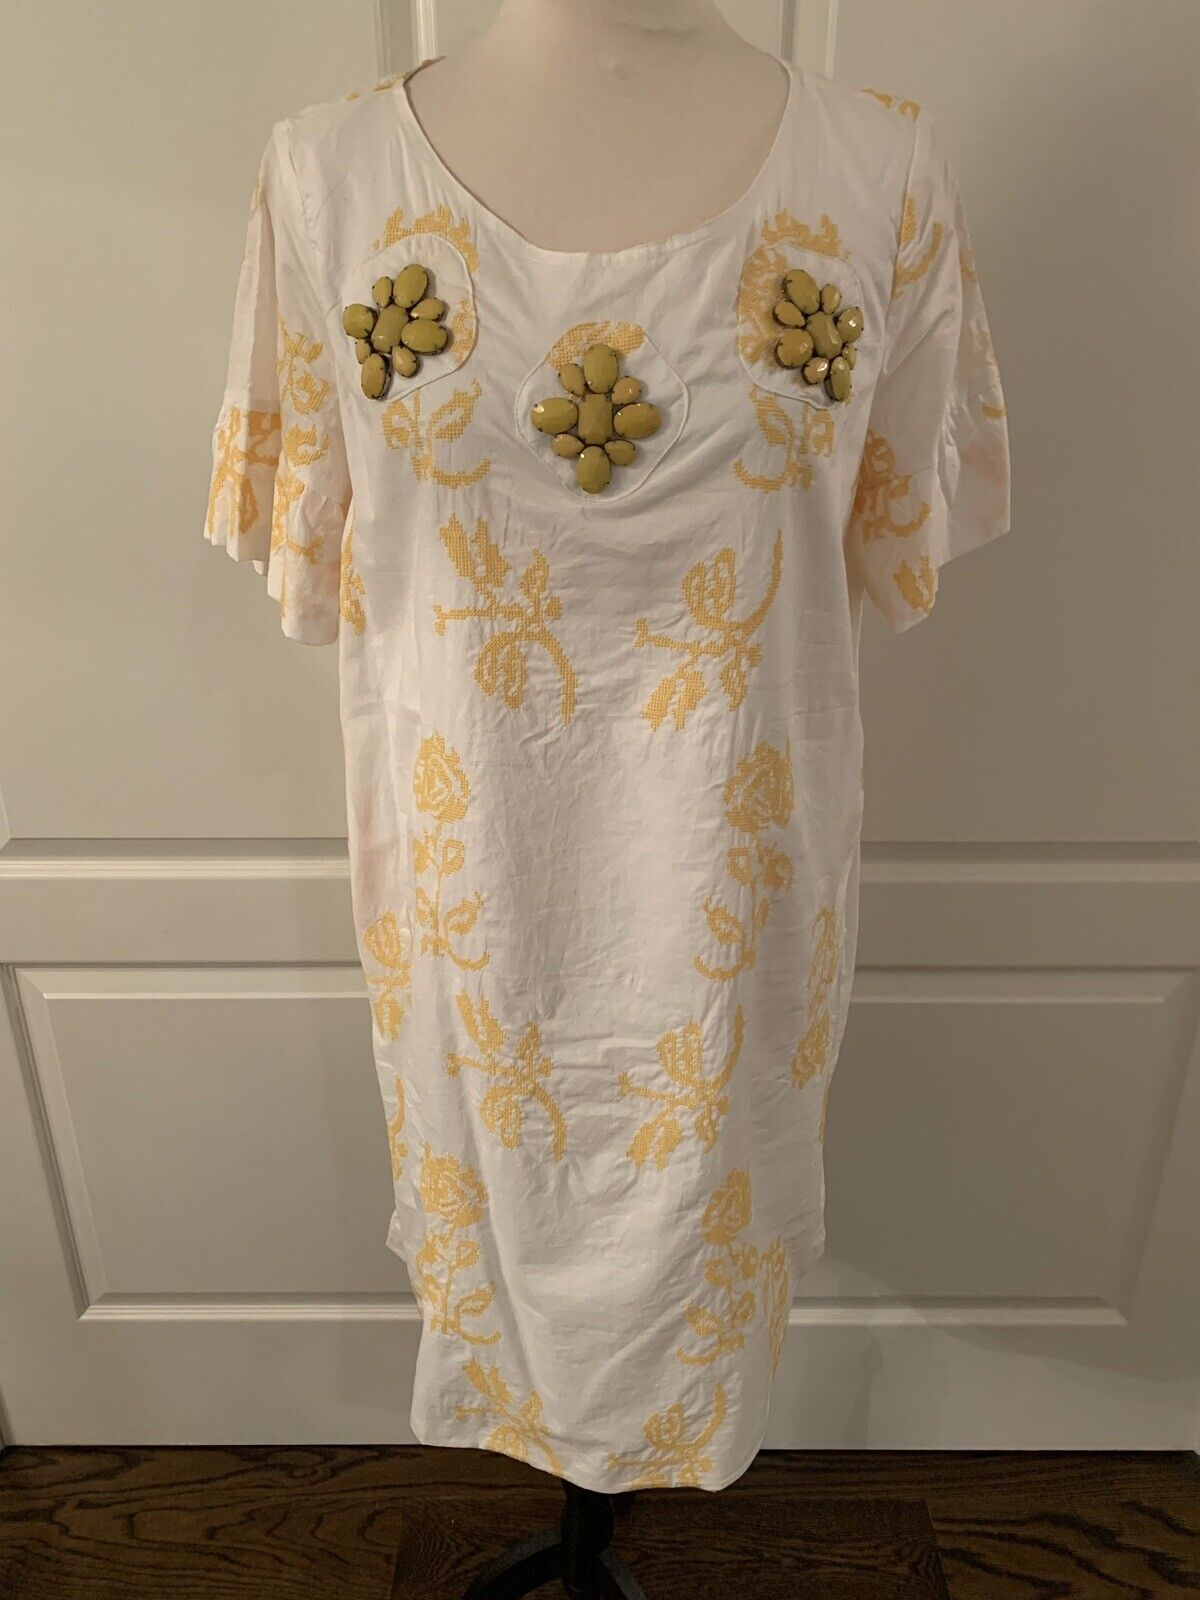 NWT Designer damen's Weiß And Gelb Embroiderot Short Sleeve Dress Größe L